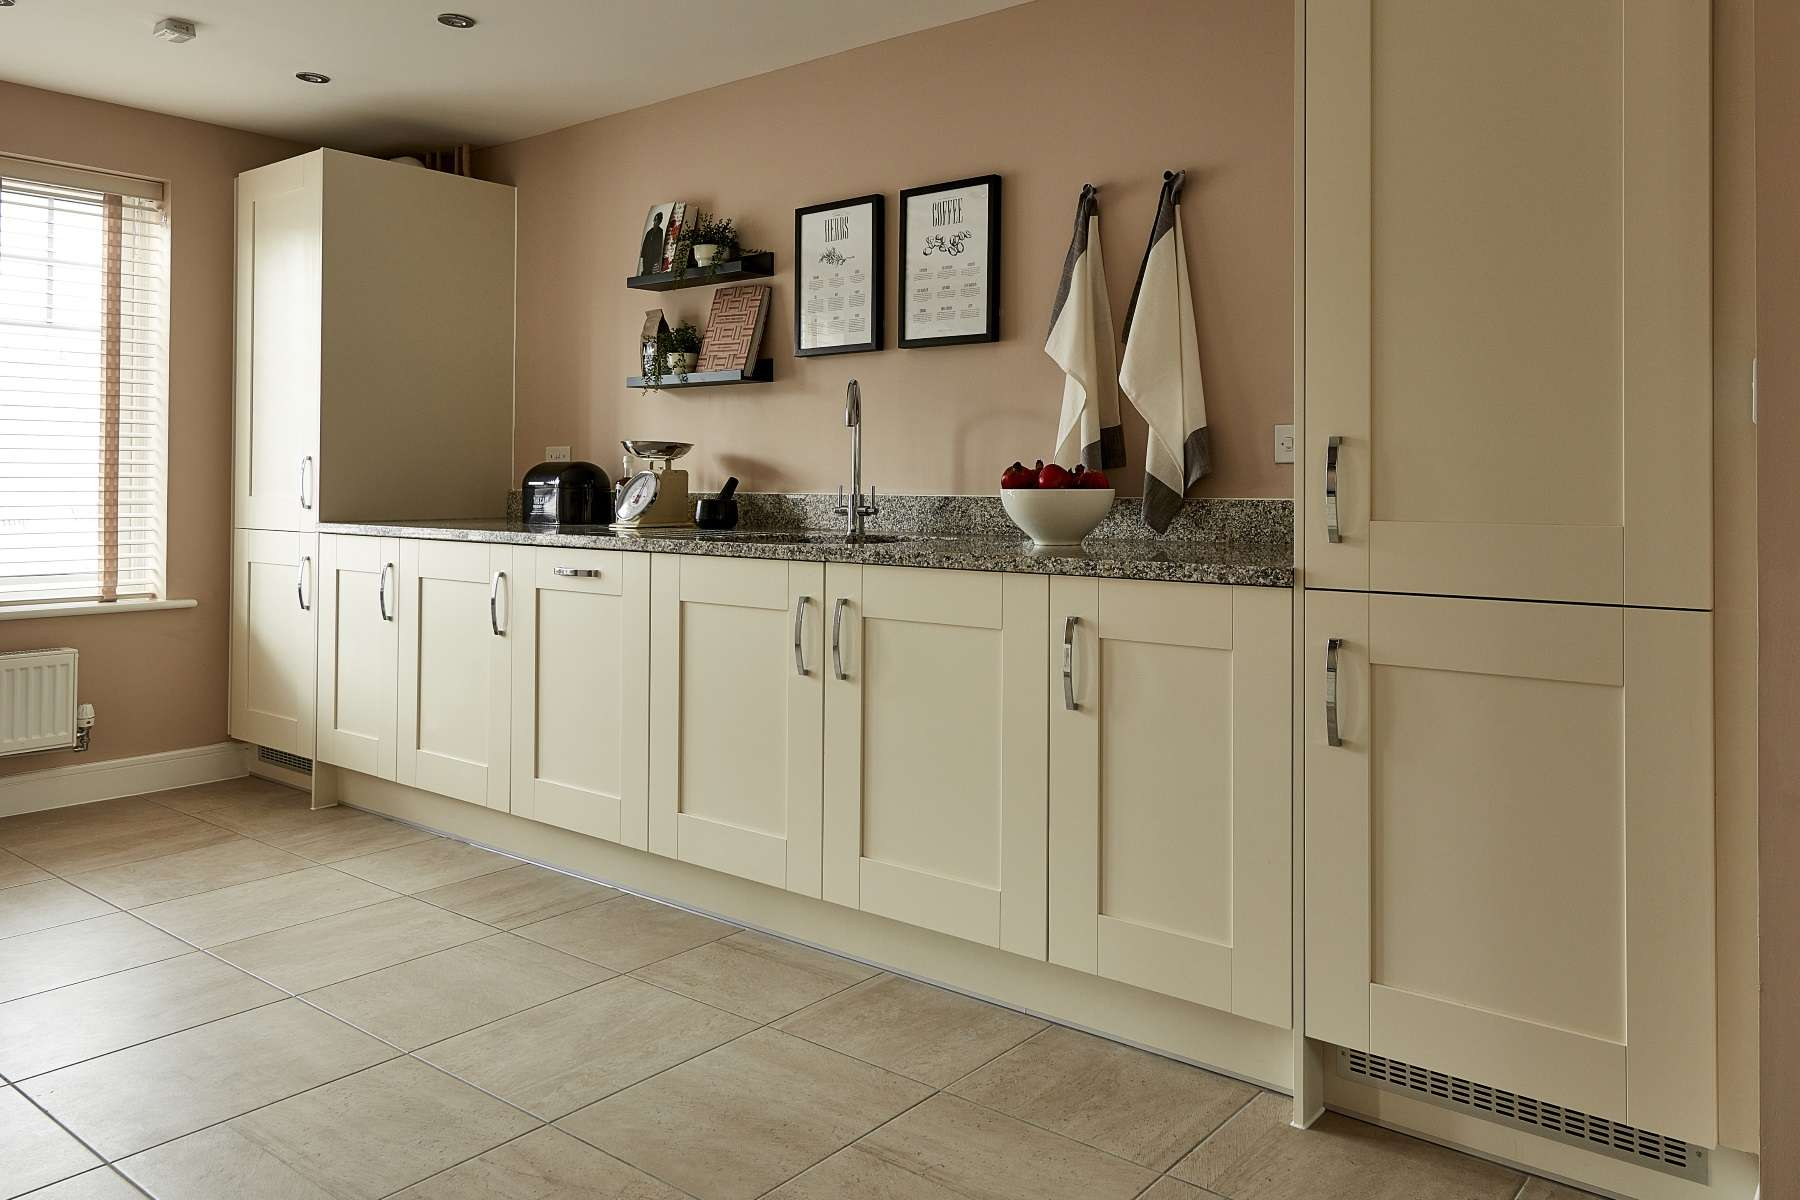 TW Exeter - Mayfield Gardens - Marford example kitchen 2